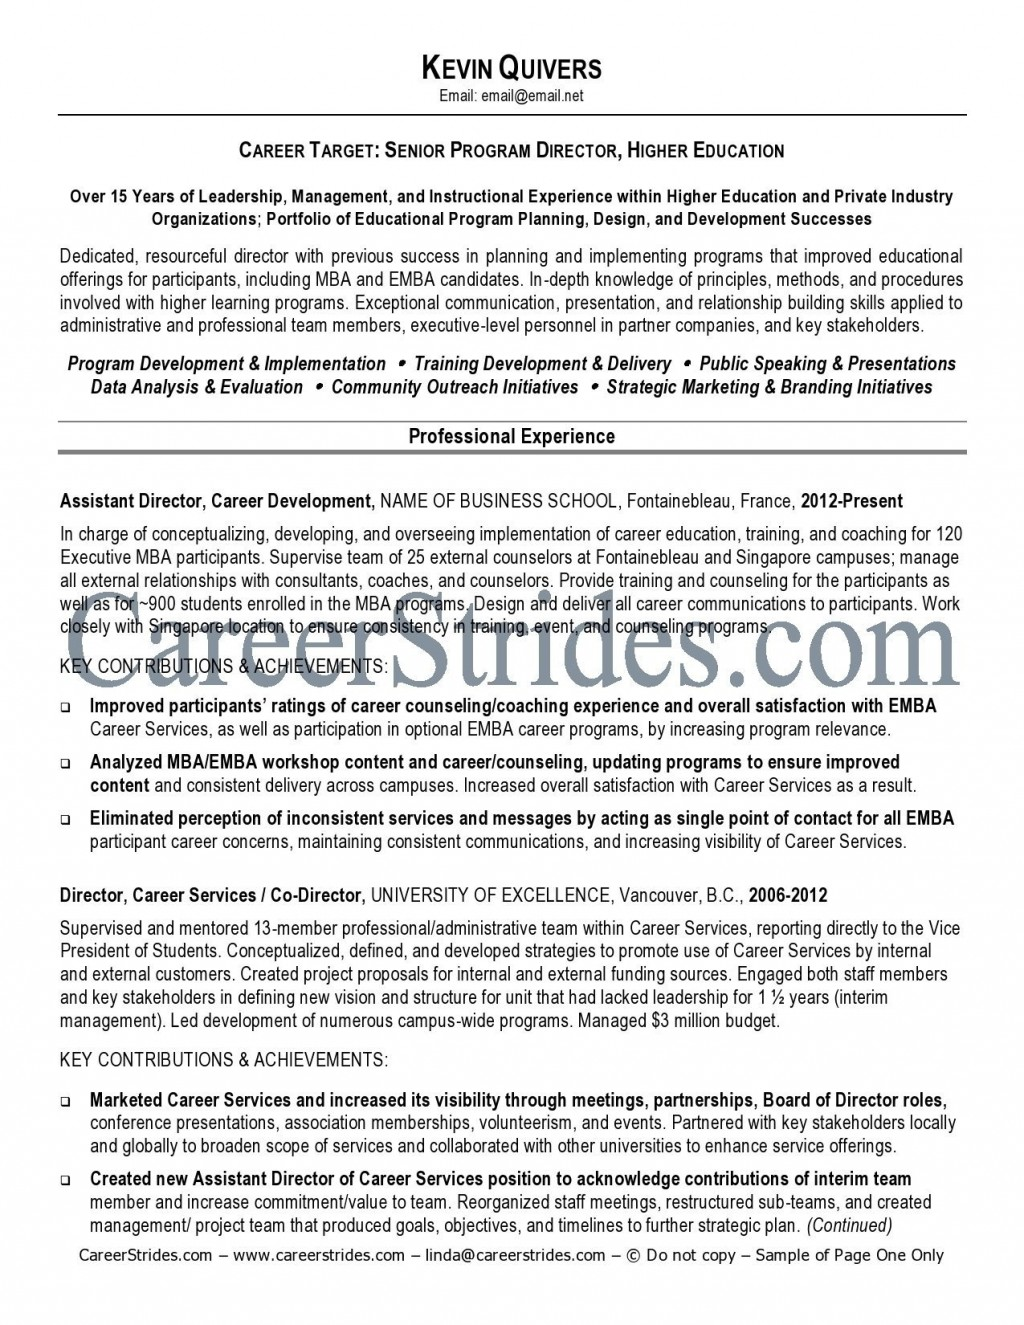 009 Higher Education Narrative Essay Topics For College Students Unforgettable Personal Ideas Large